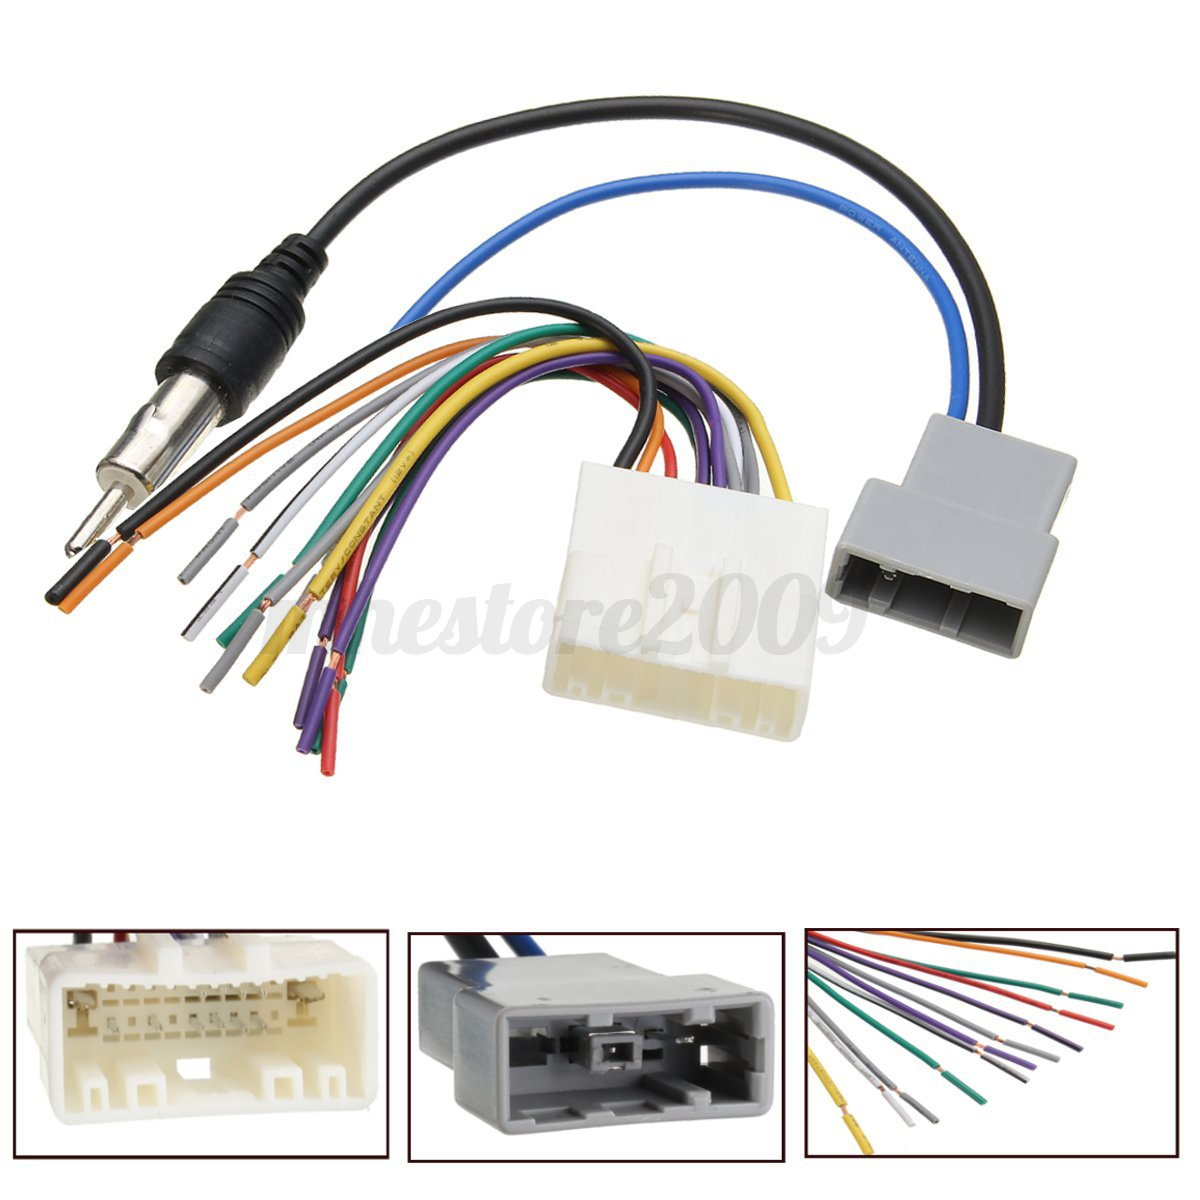 Nissan Stereo Wiring Harness Free Diagram For You Electrical Cars Car Dvd Radio Install Wire Cable Plugs Adapter